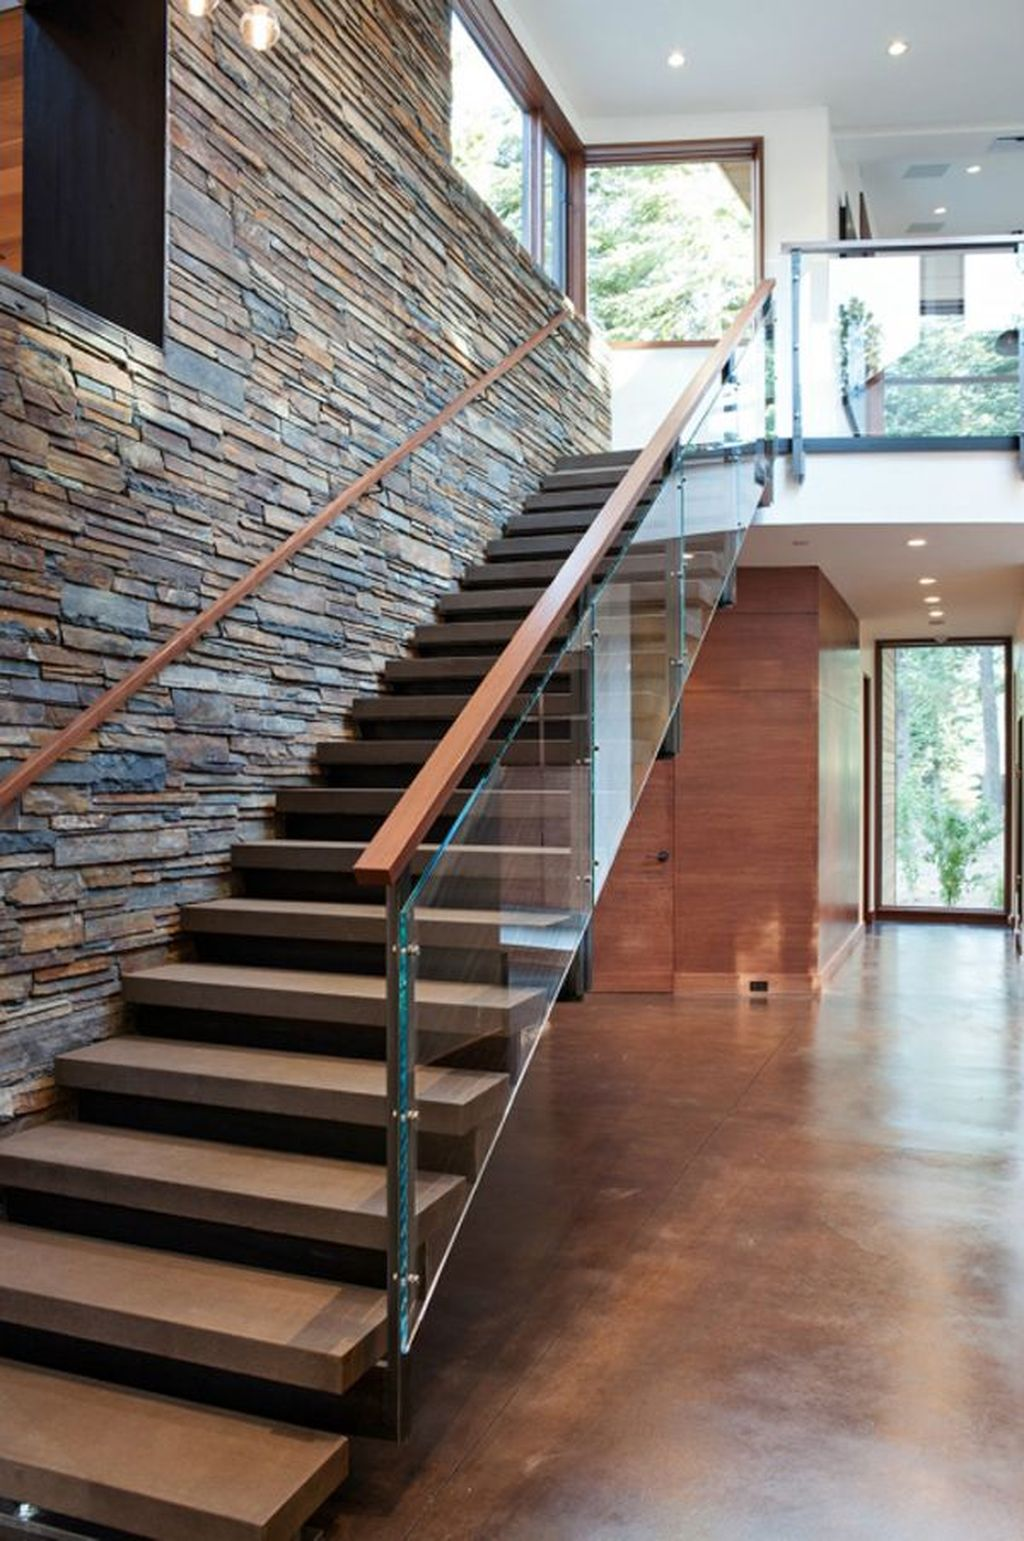 Awesome Modern Glass Railings Design Ideas For Stairs 06